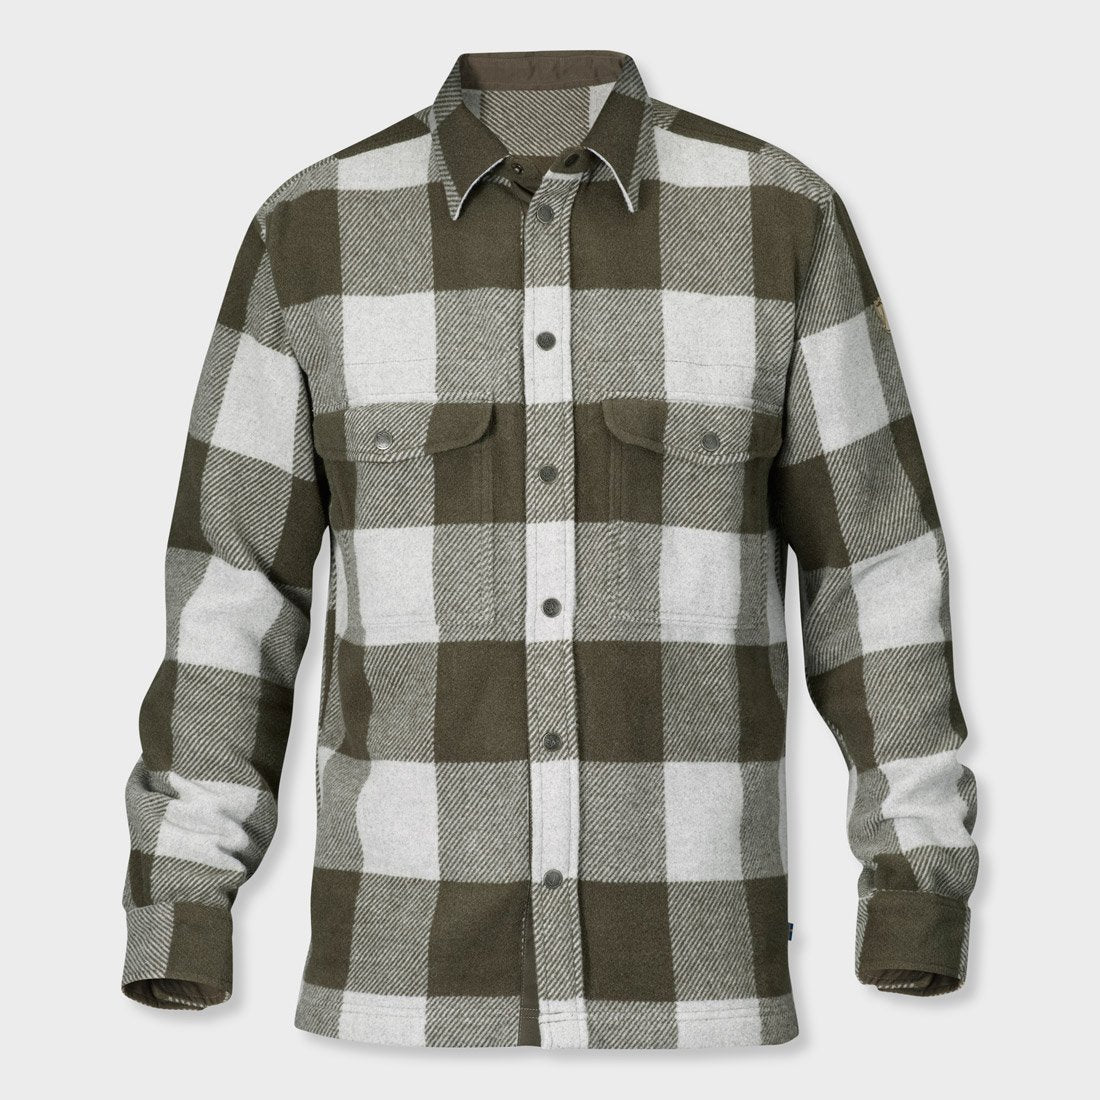 Fjallraven Canada Shirt Deep Forest